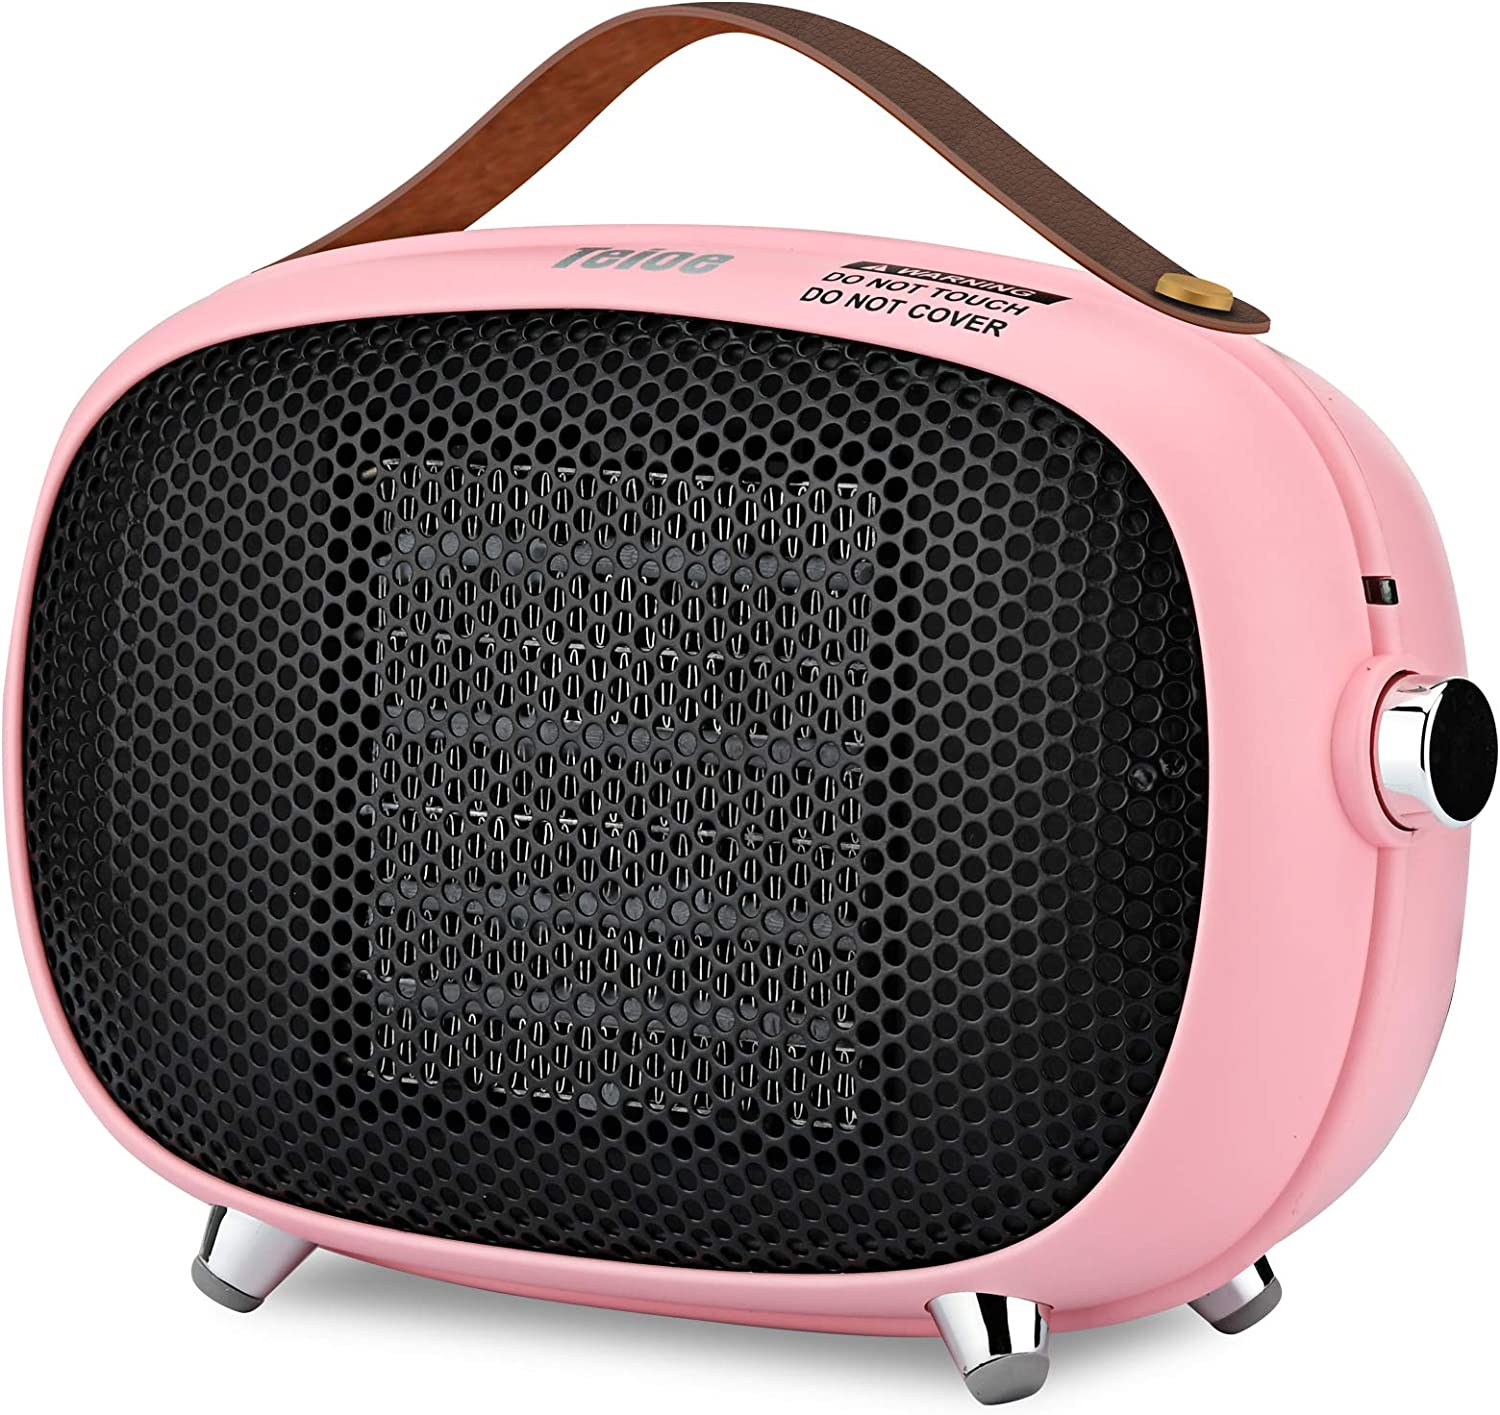 Space Heater, Teioe Mini Electric Space Heater 800W/400W, Small PTC Ceramic Heater with Tip-Over & Overheat Protection, 3 Operating Modes, Portable Space Heaters for Indoor, Office, Bedroom(PINK)